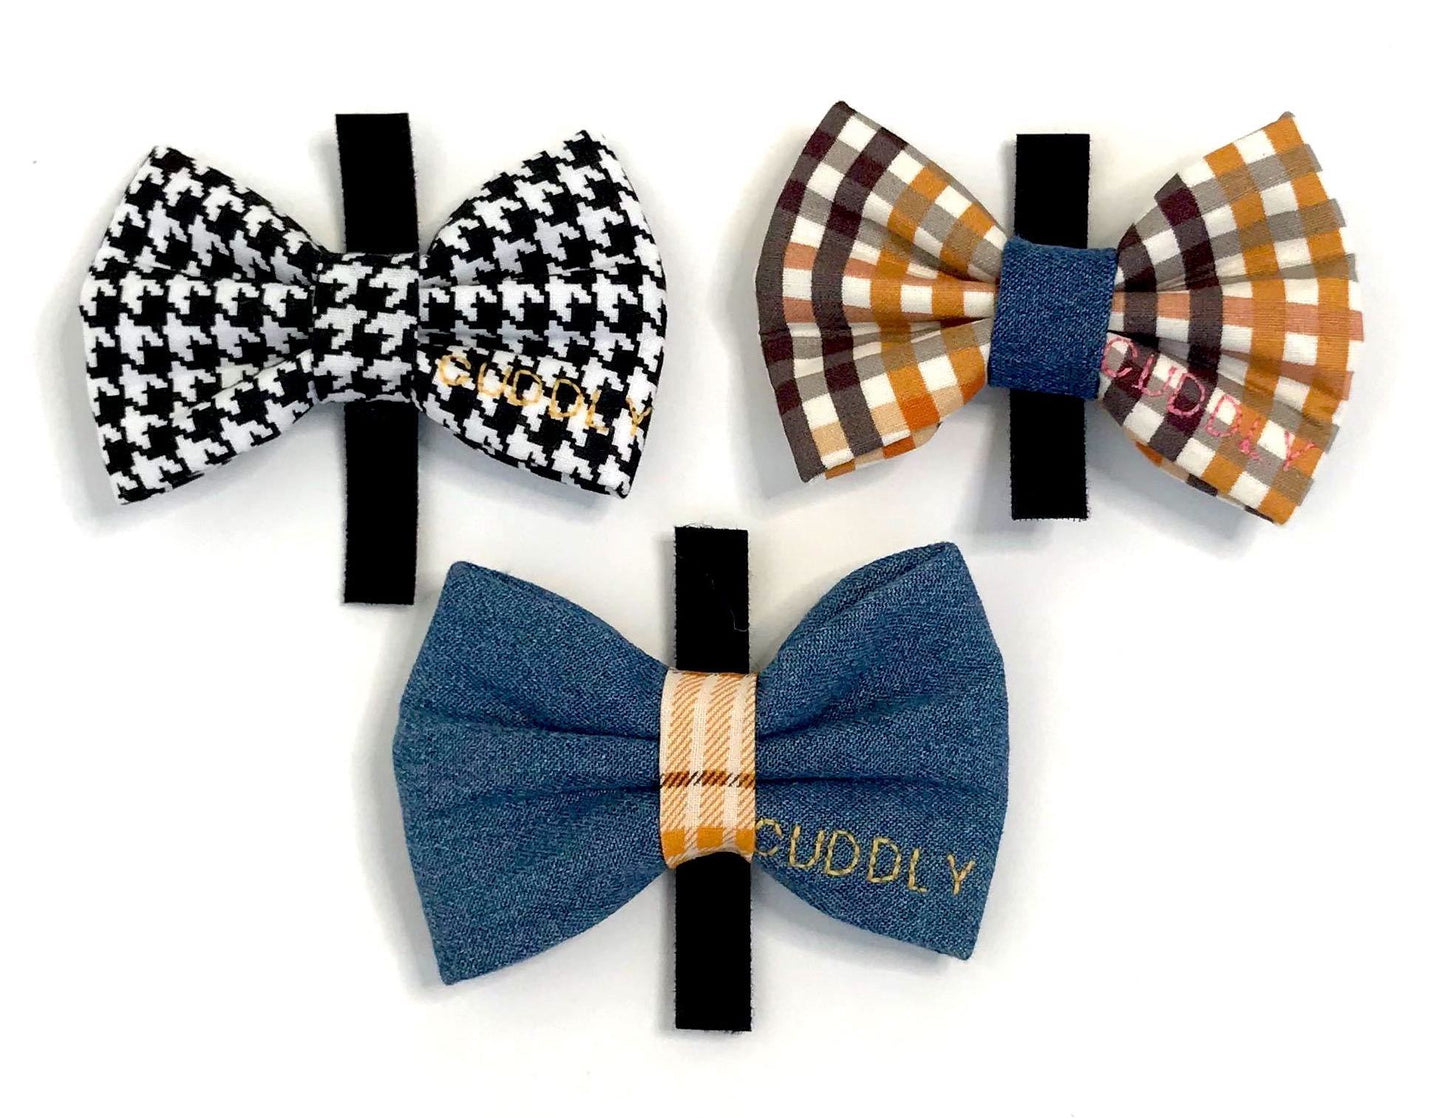 Official CUDDLY Bow Tie Bundle